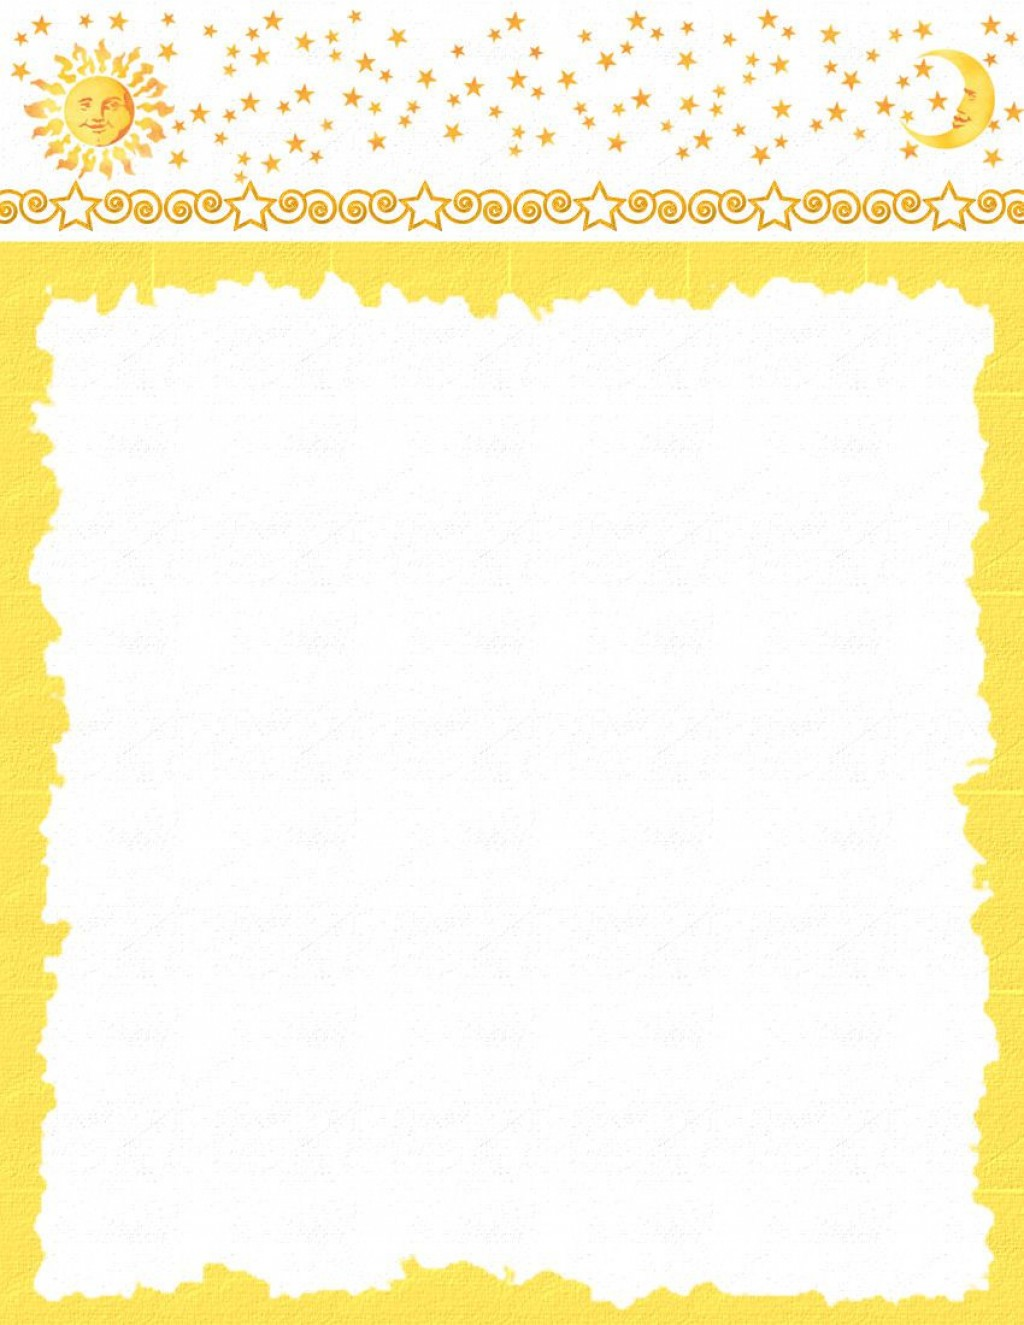 009 Fantastic Stationary Template For Word Highest Clarity  Lined Stationery Free DownloadLarge